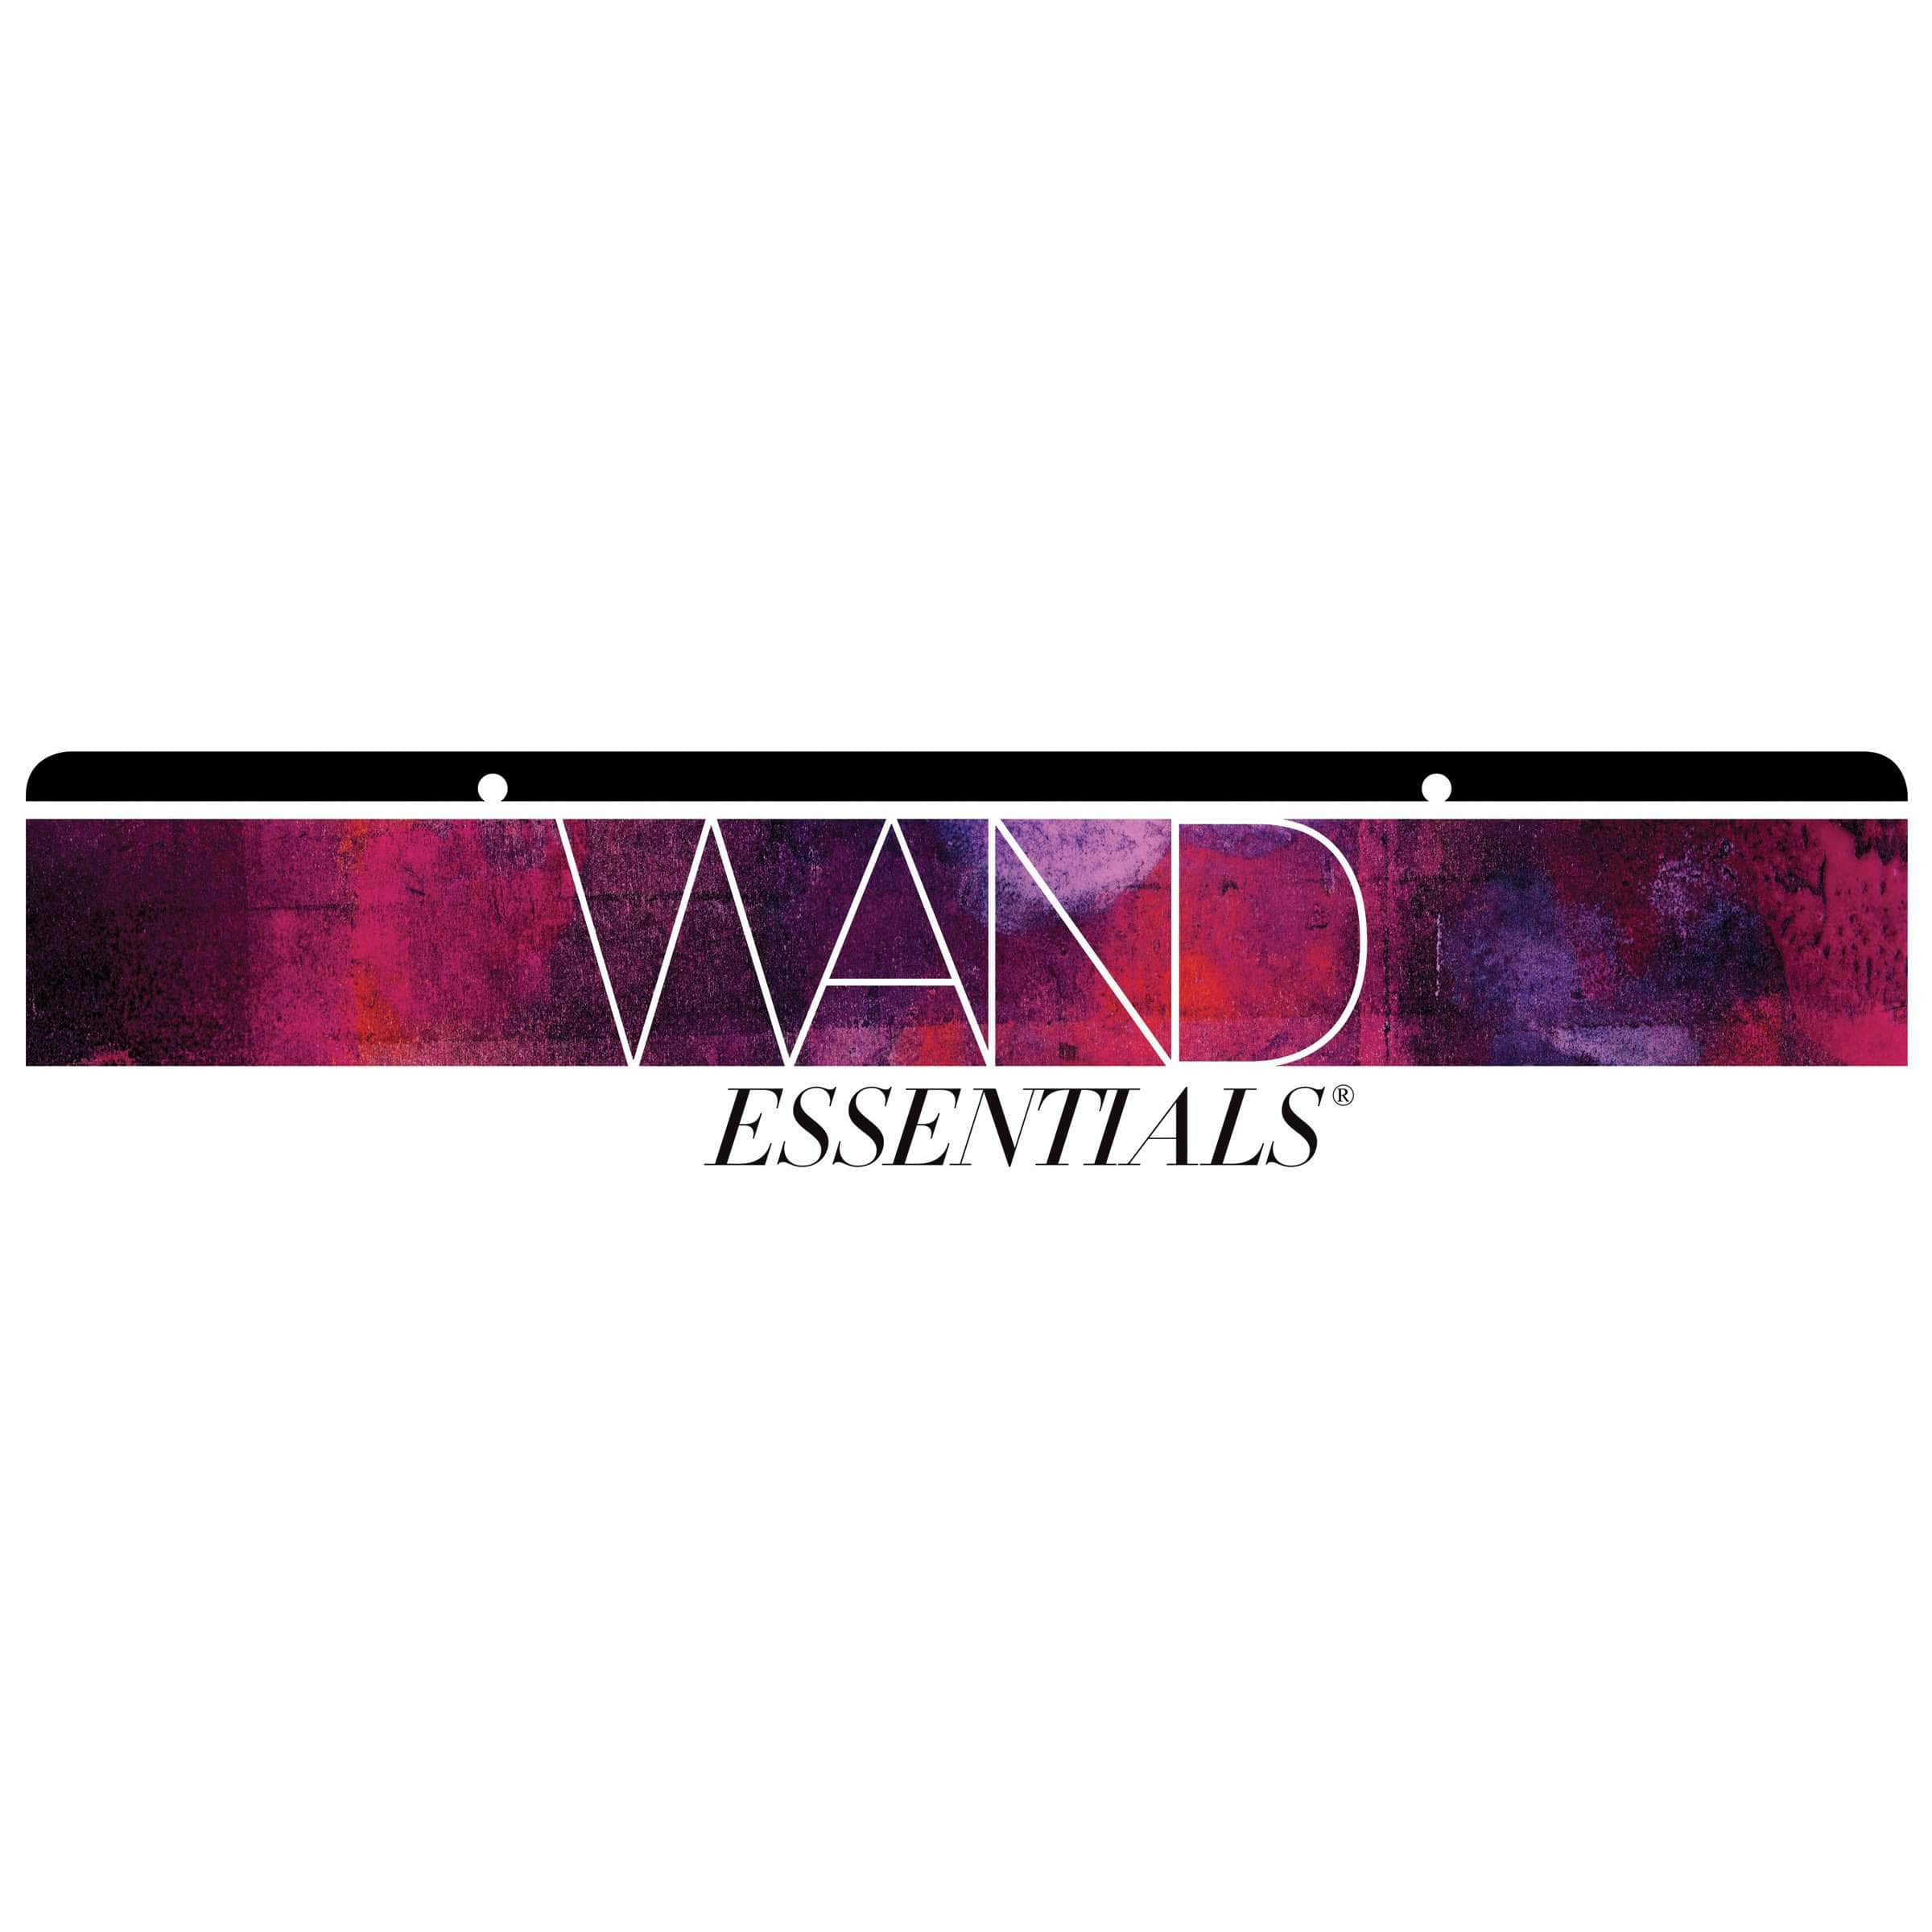 Wand Essentials Display Sign